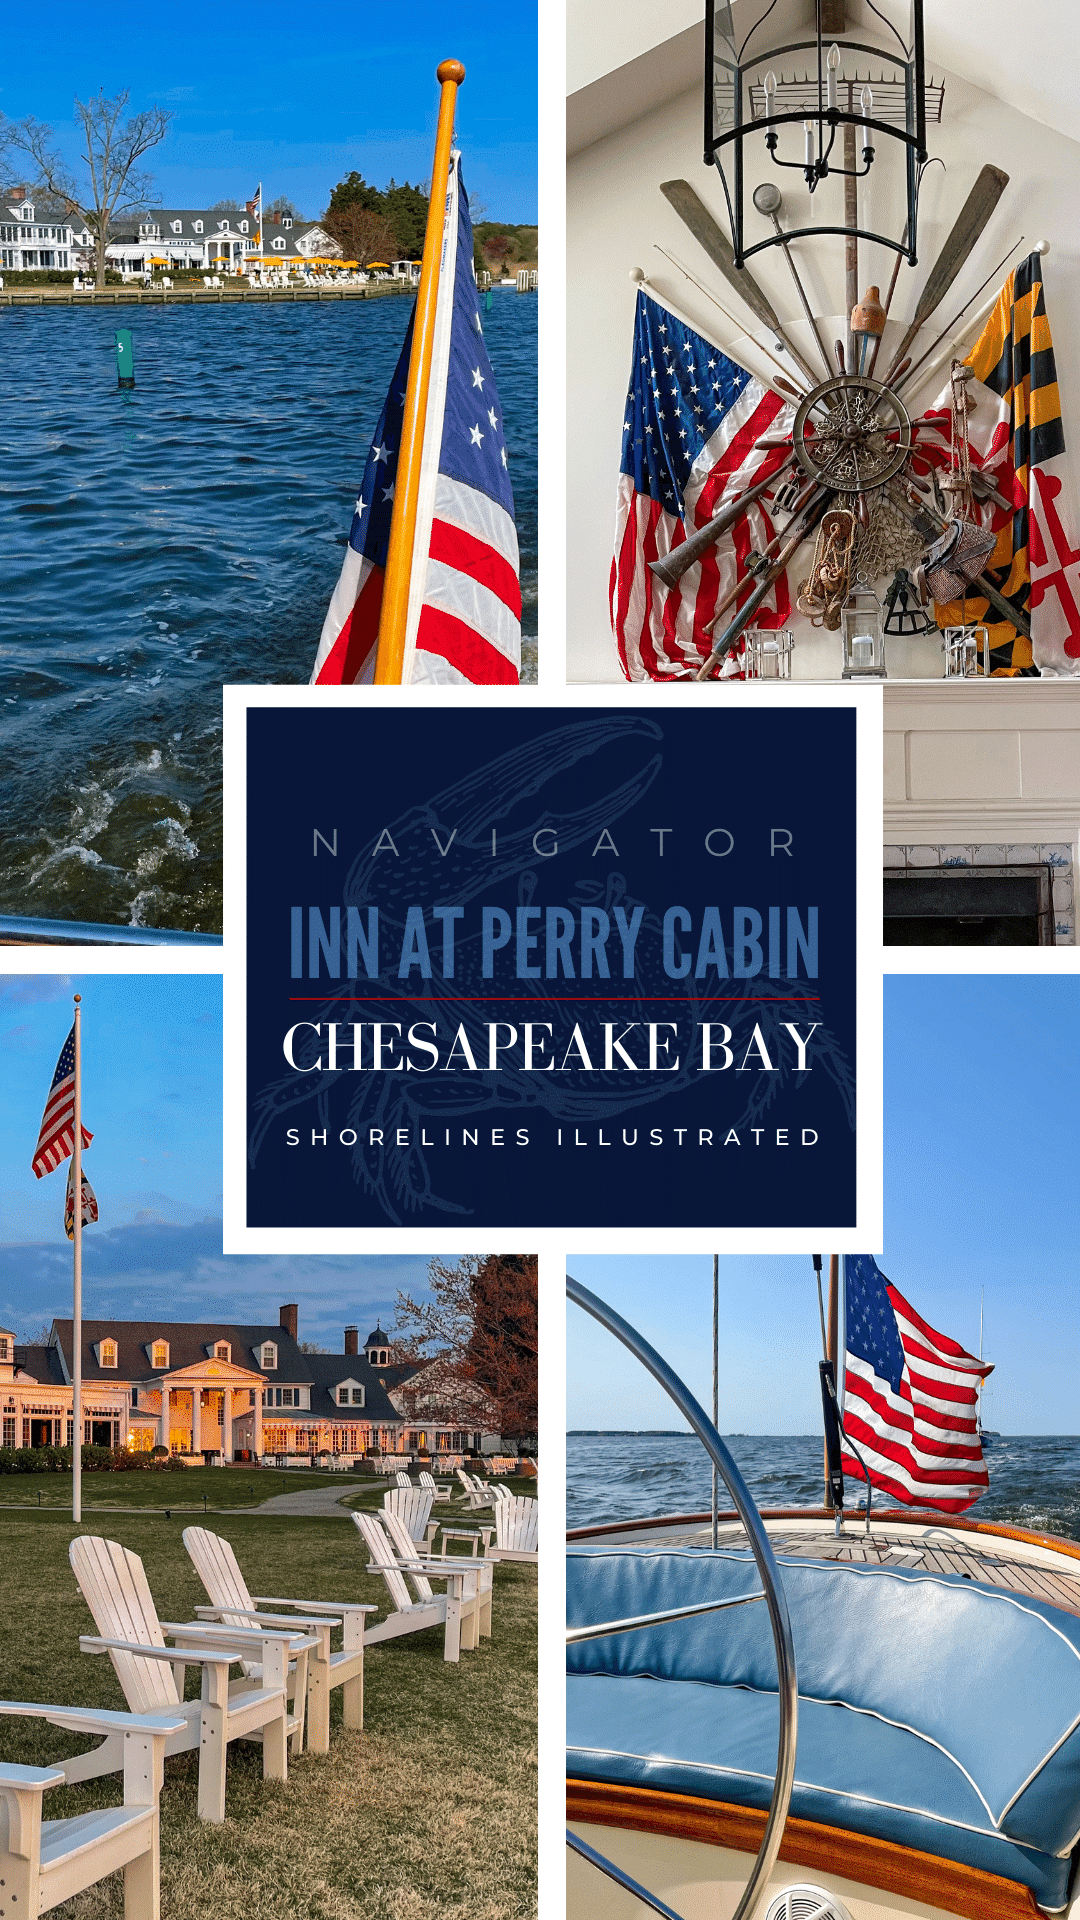 Sailing the Chesapeake Bay at the Inn at Perry Cabin in St Michaels, Maryland